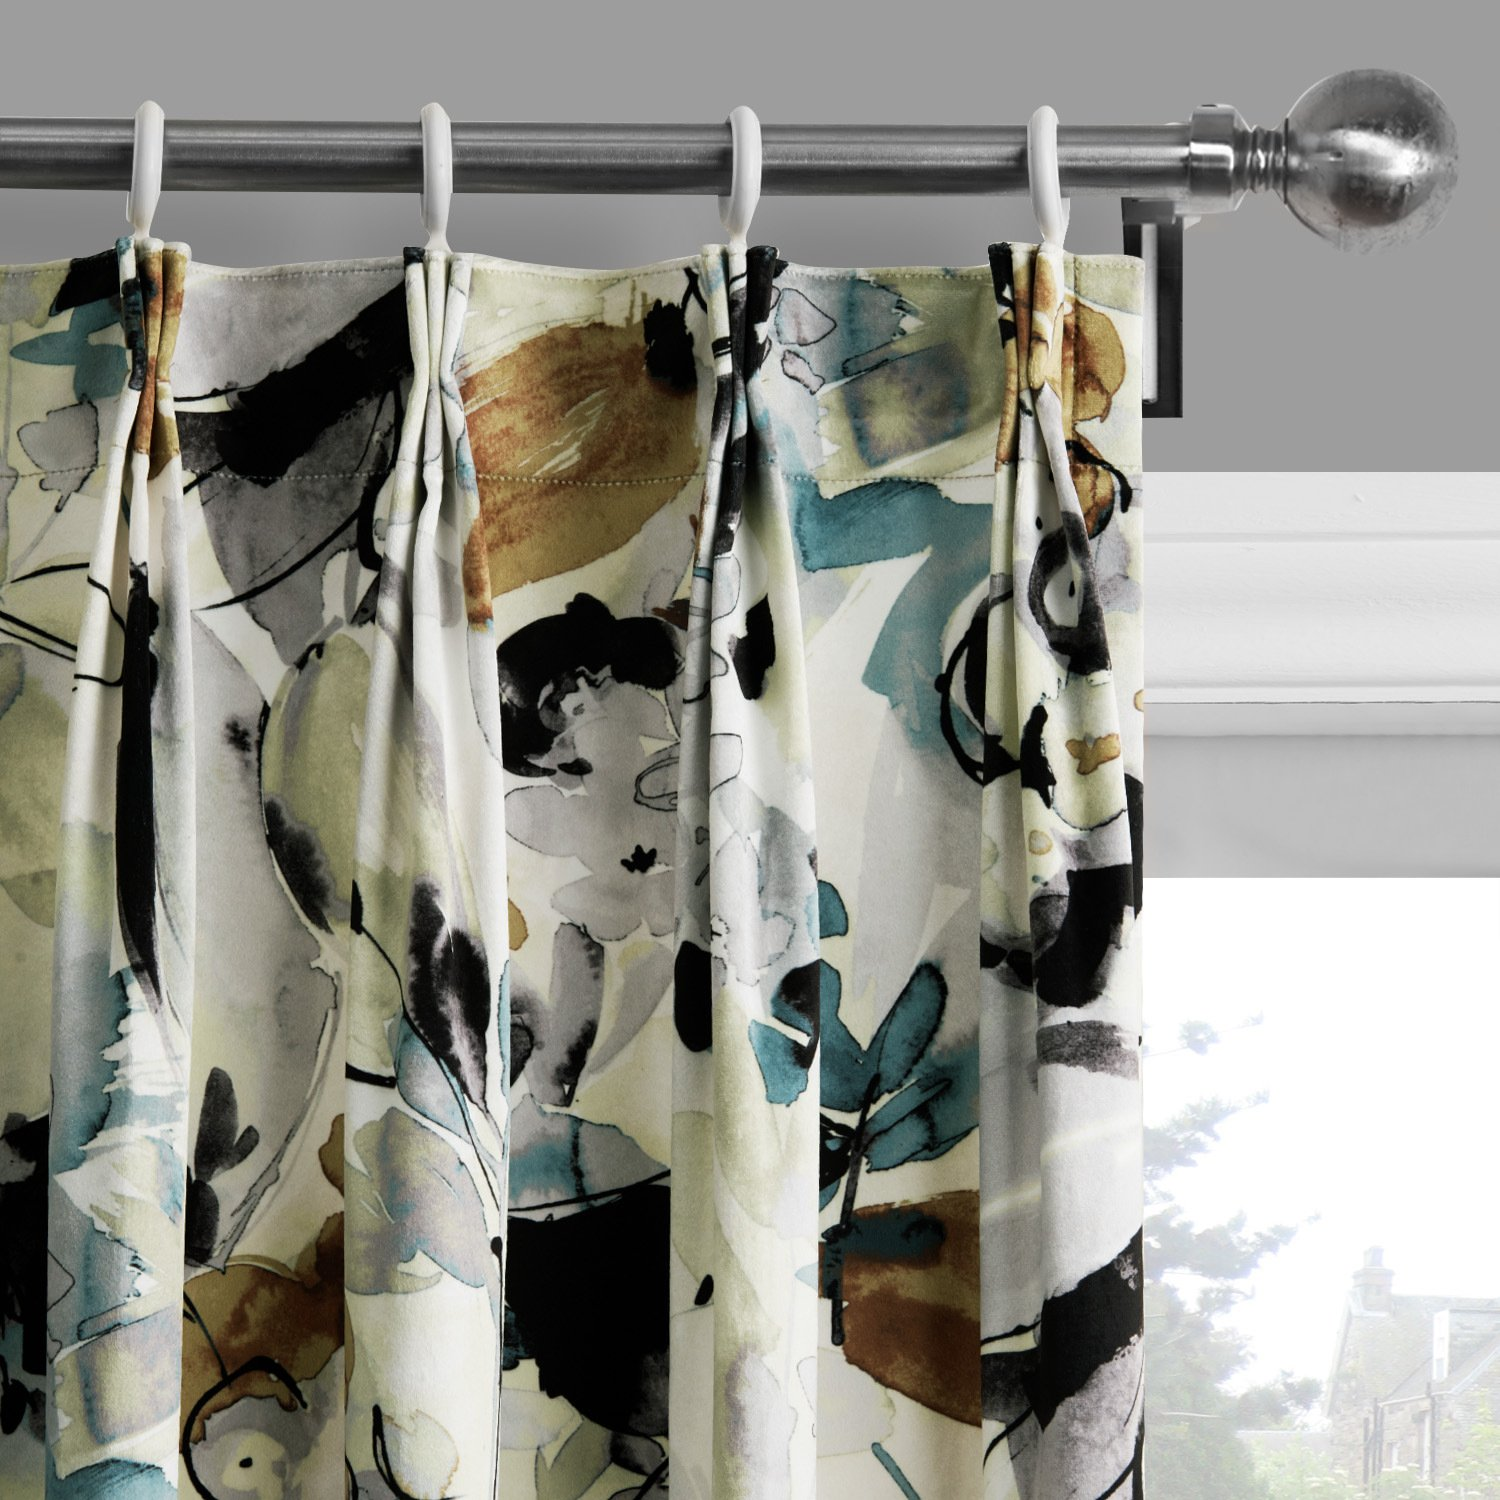 25 Sizes Available (Set of 1 panel) (72''W x 84''L) Pleated Top Contemporary Print Artistic Oil Painting Style Abstract Floral Blackout Lining Window Treatment Draperies & Curtains Panels